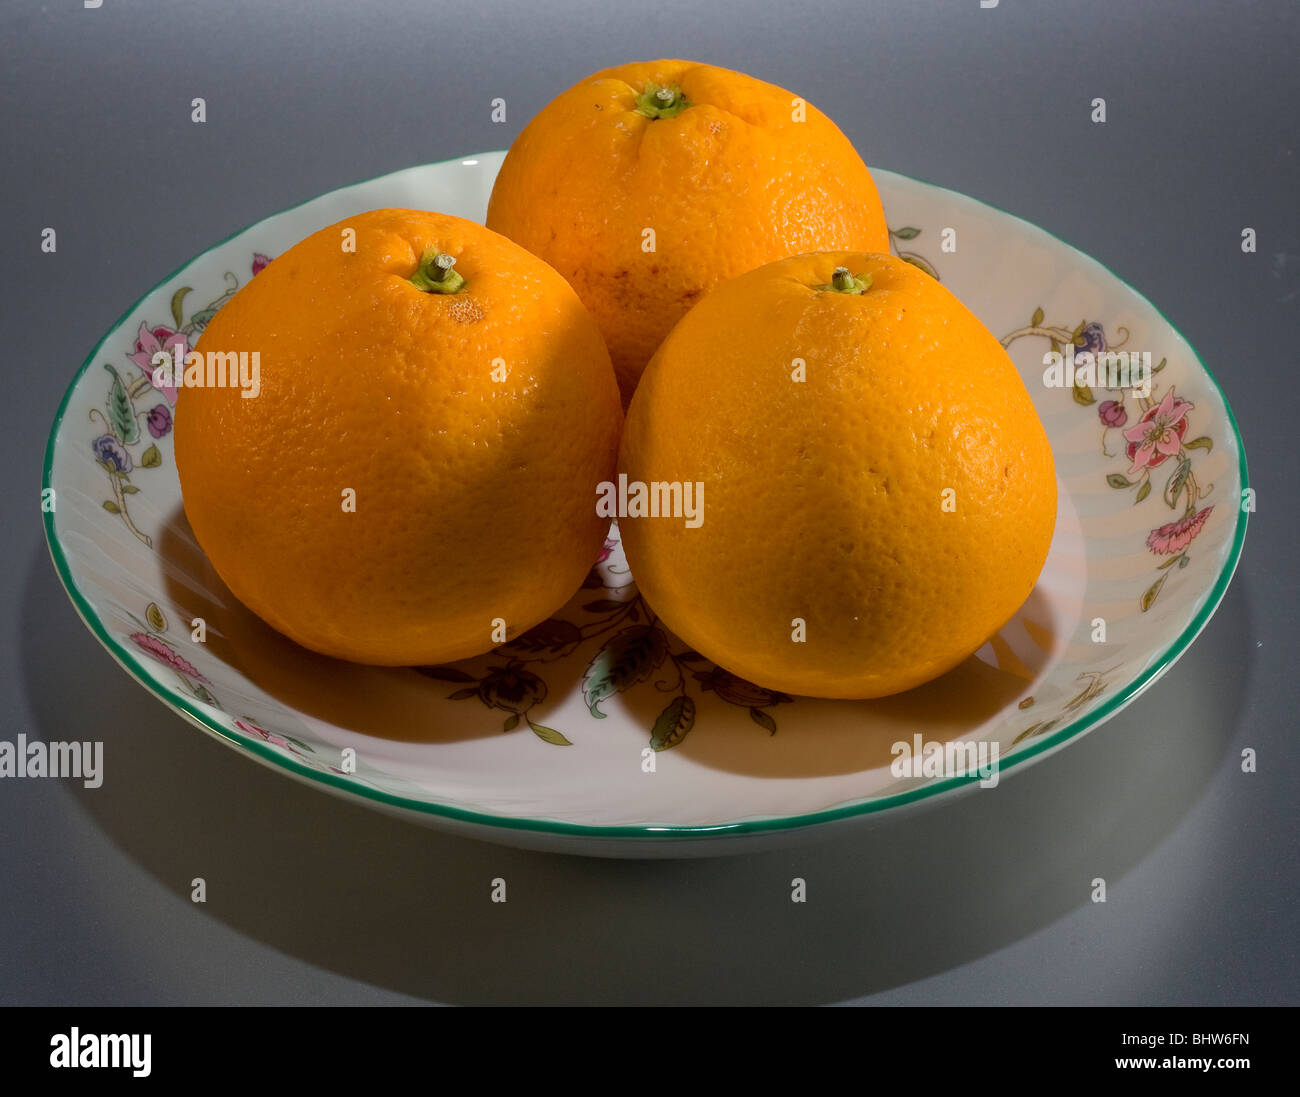 Bowl with oranges - still life - Stock Image